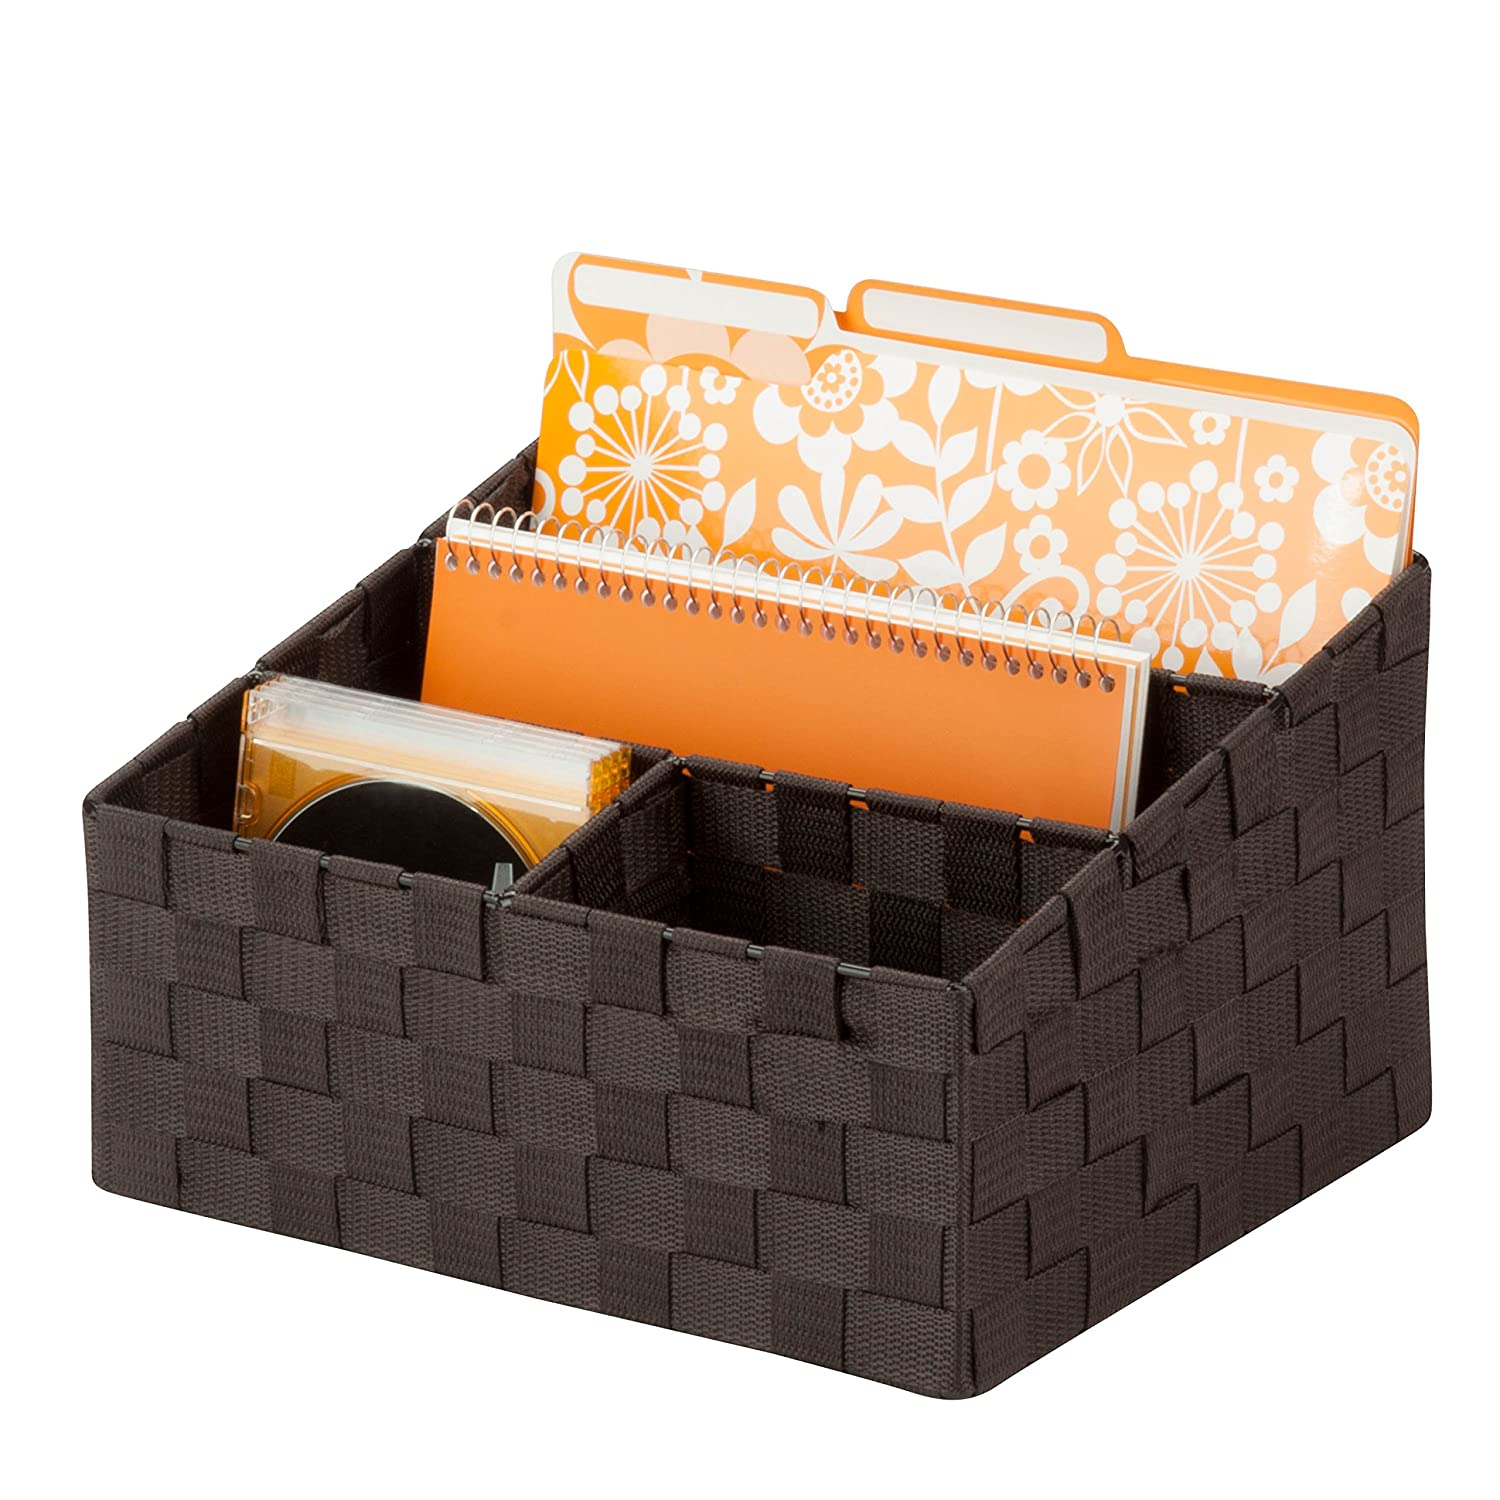 "Honey-Can-Do OFC-03611 Woven Mail and File Desk Organizer, 12 x 10.25 x 7"", Espresso"